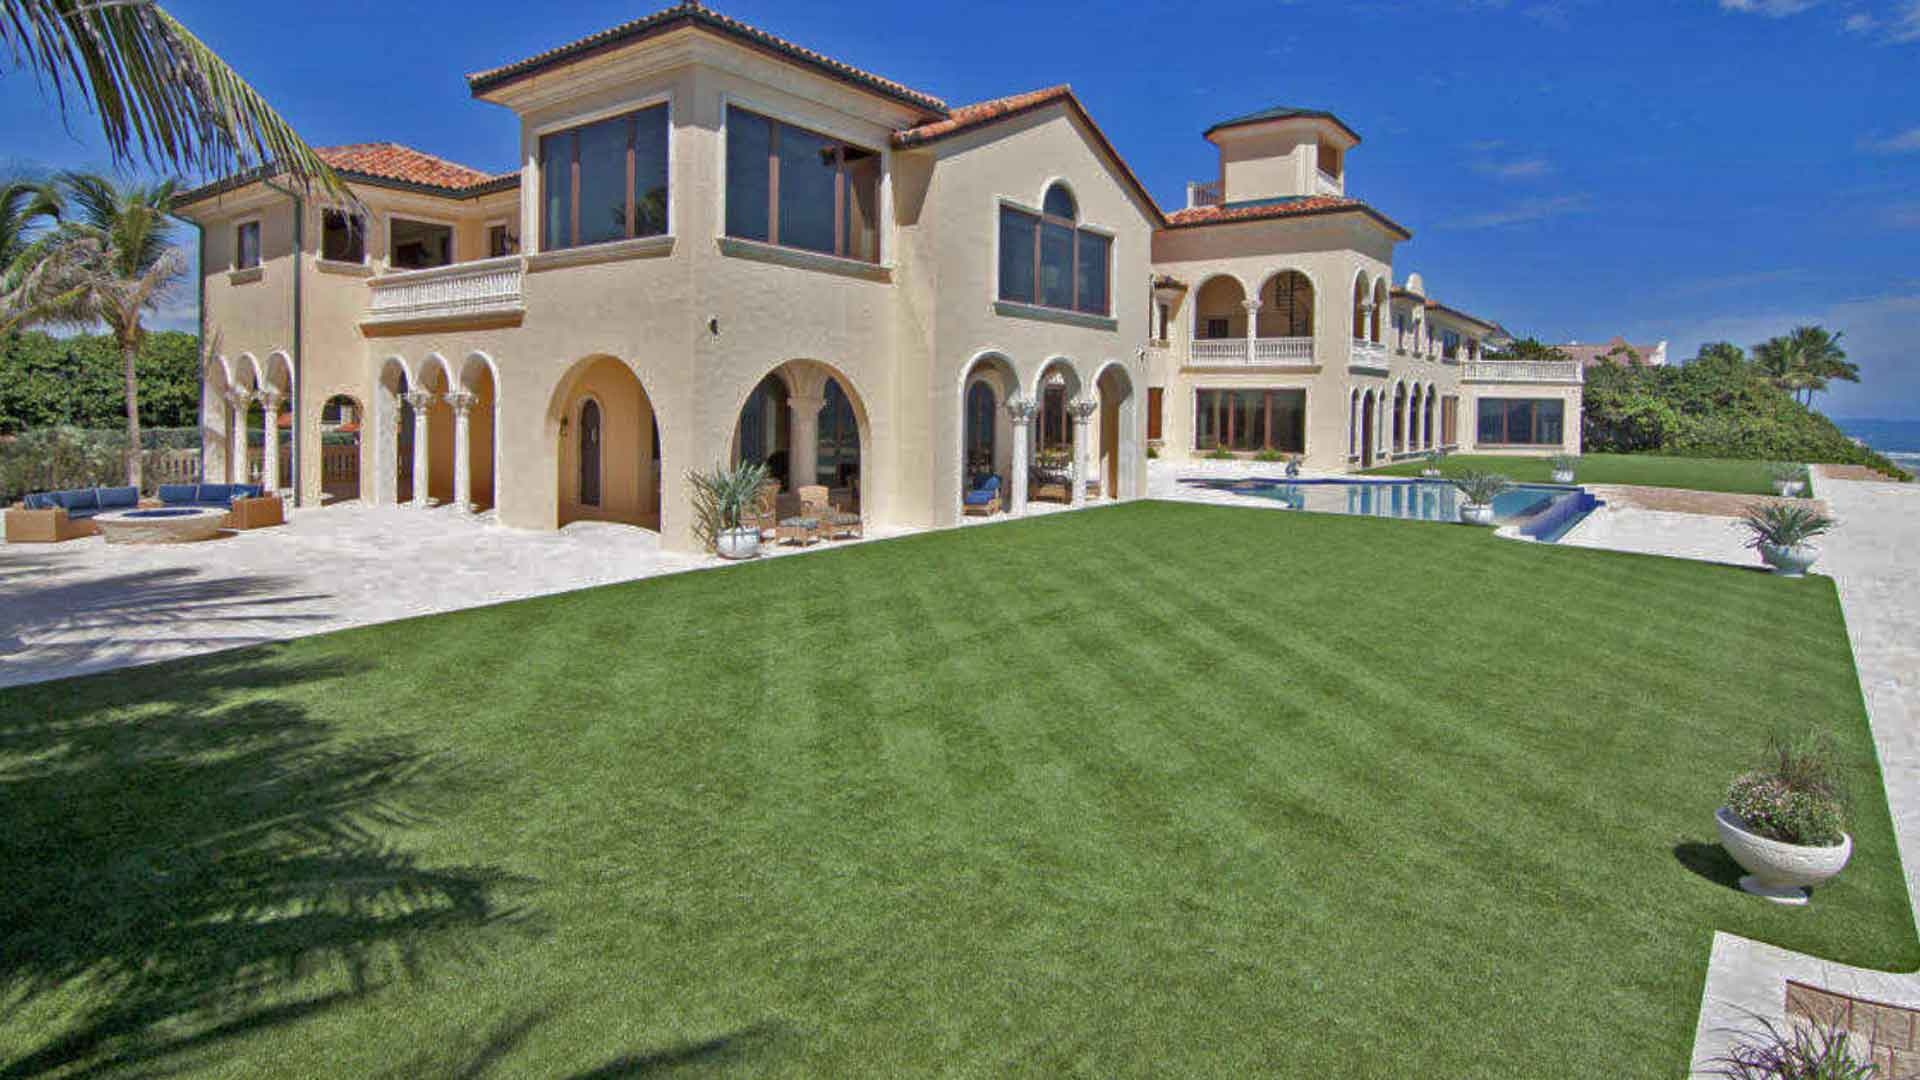 Large estate in Palm Beach, FL with grounds maintenance by Greenscape Design.